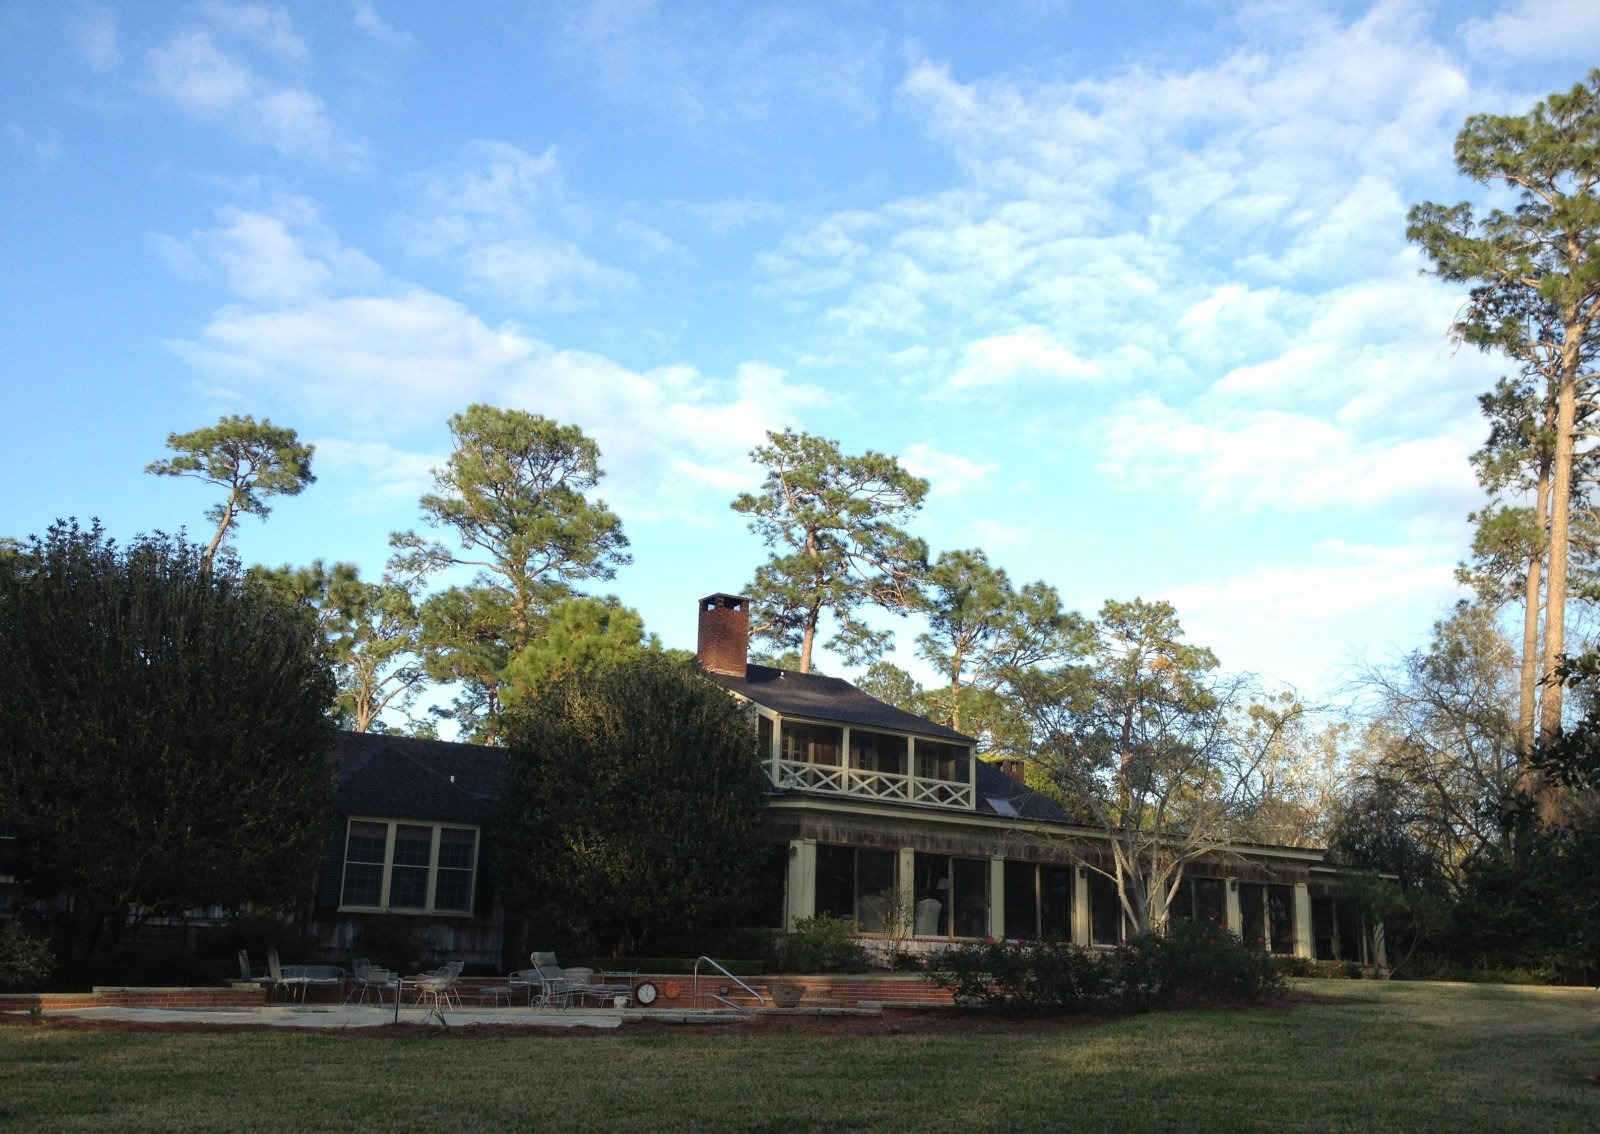 The Shooting Box - Plantation House, Hunting Lodge, and a Piece of History